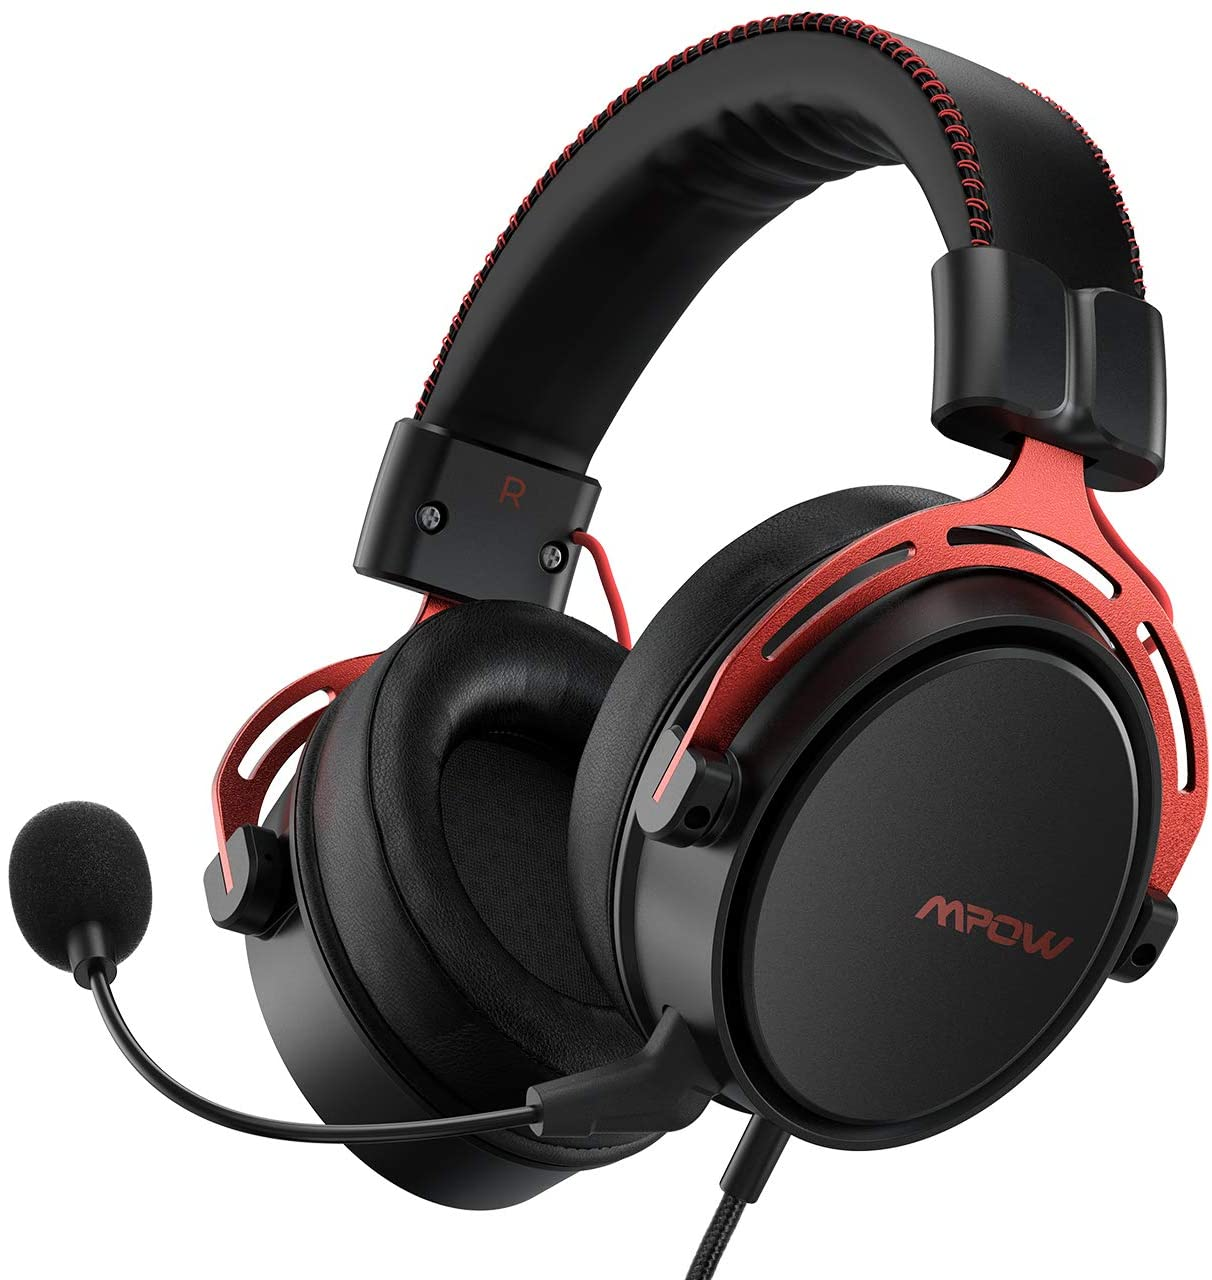 Mpow Air II 3.5mm Gaming Headset-3D Surround Sound